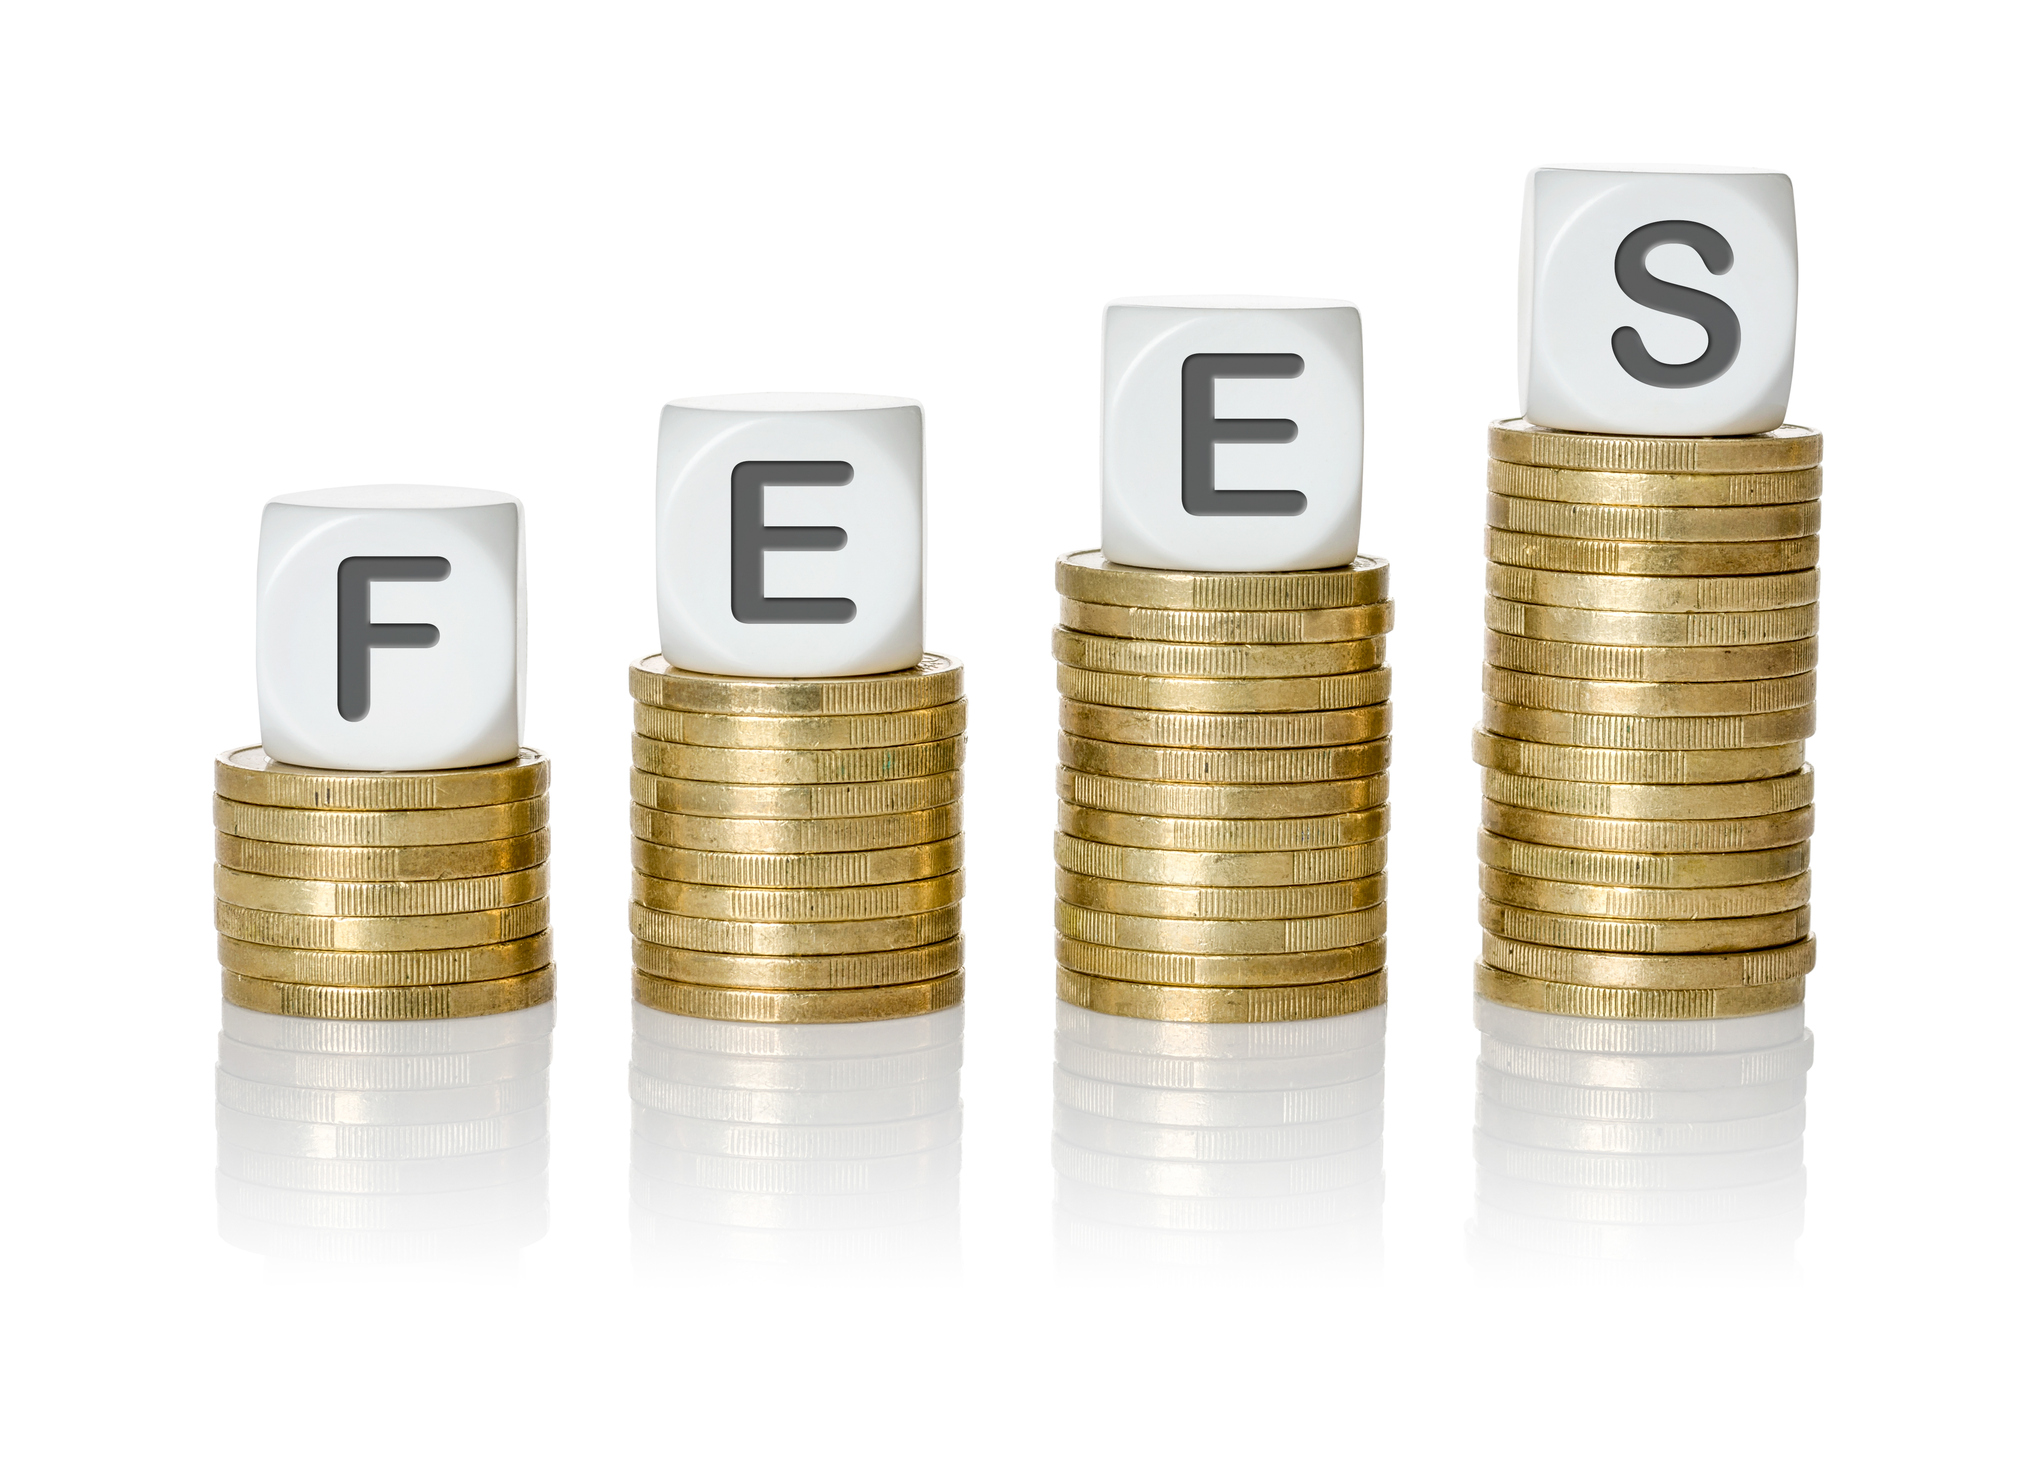 Coin stacks with letter dice for letting agent fees